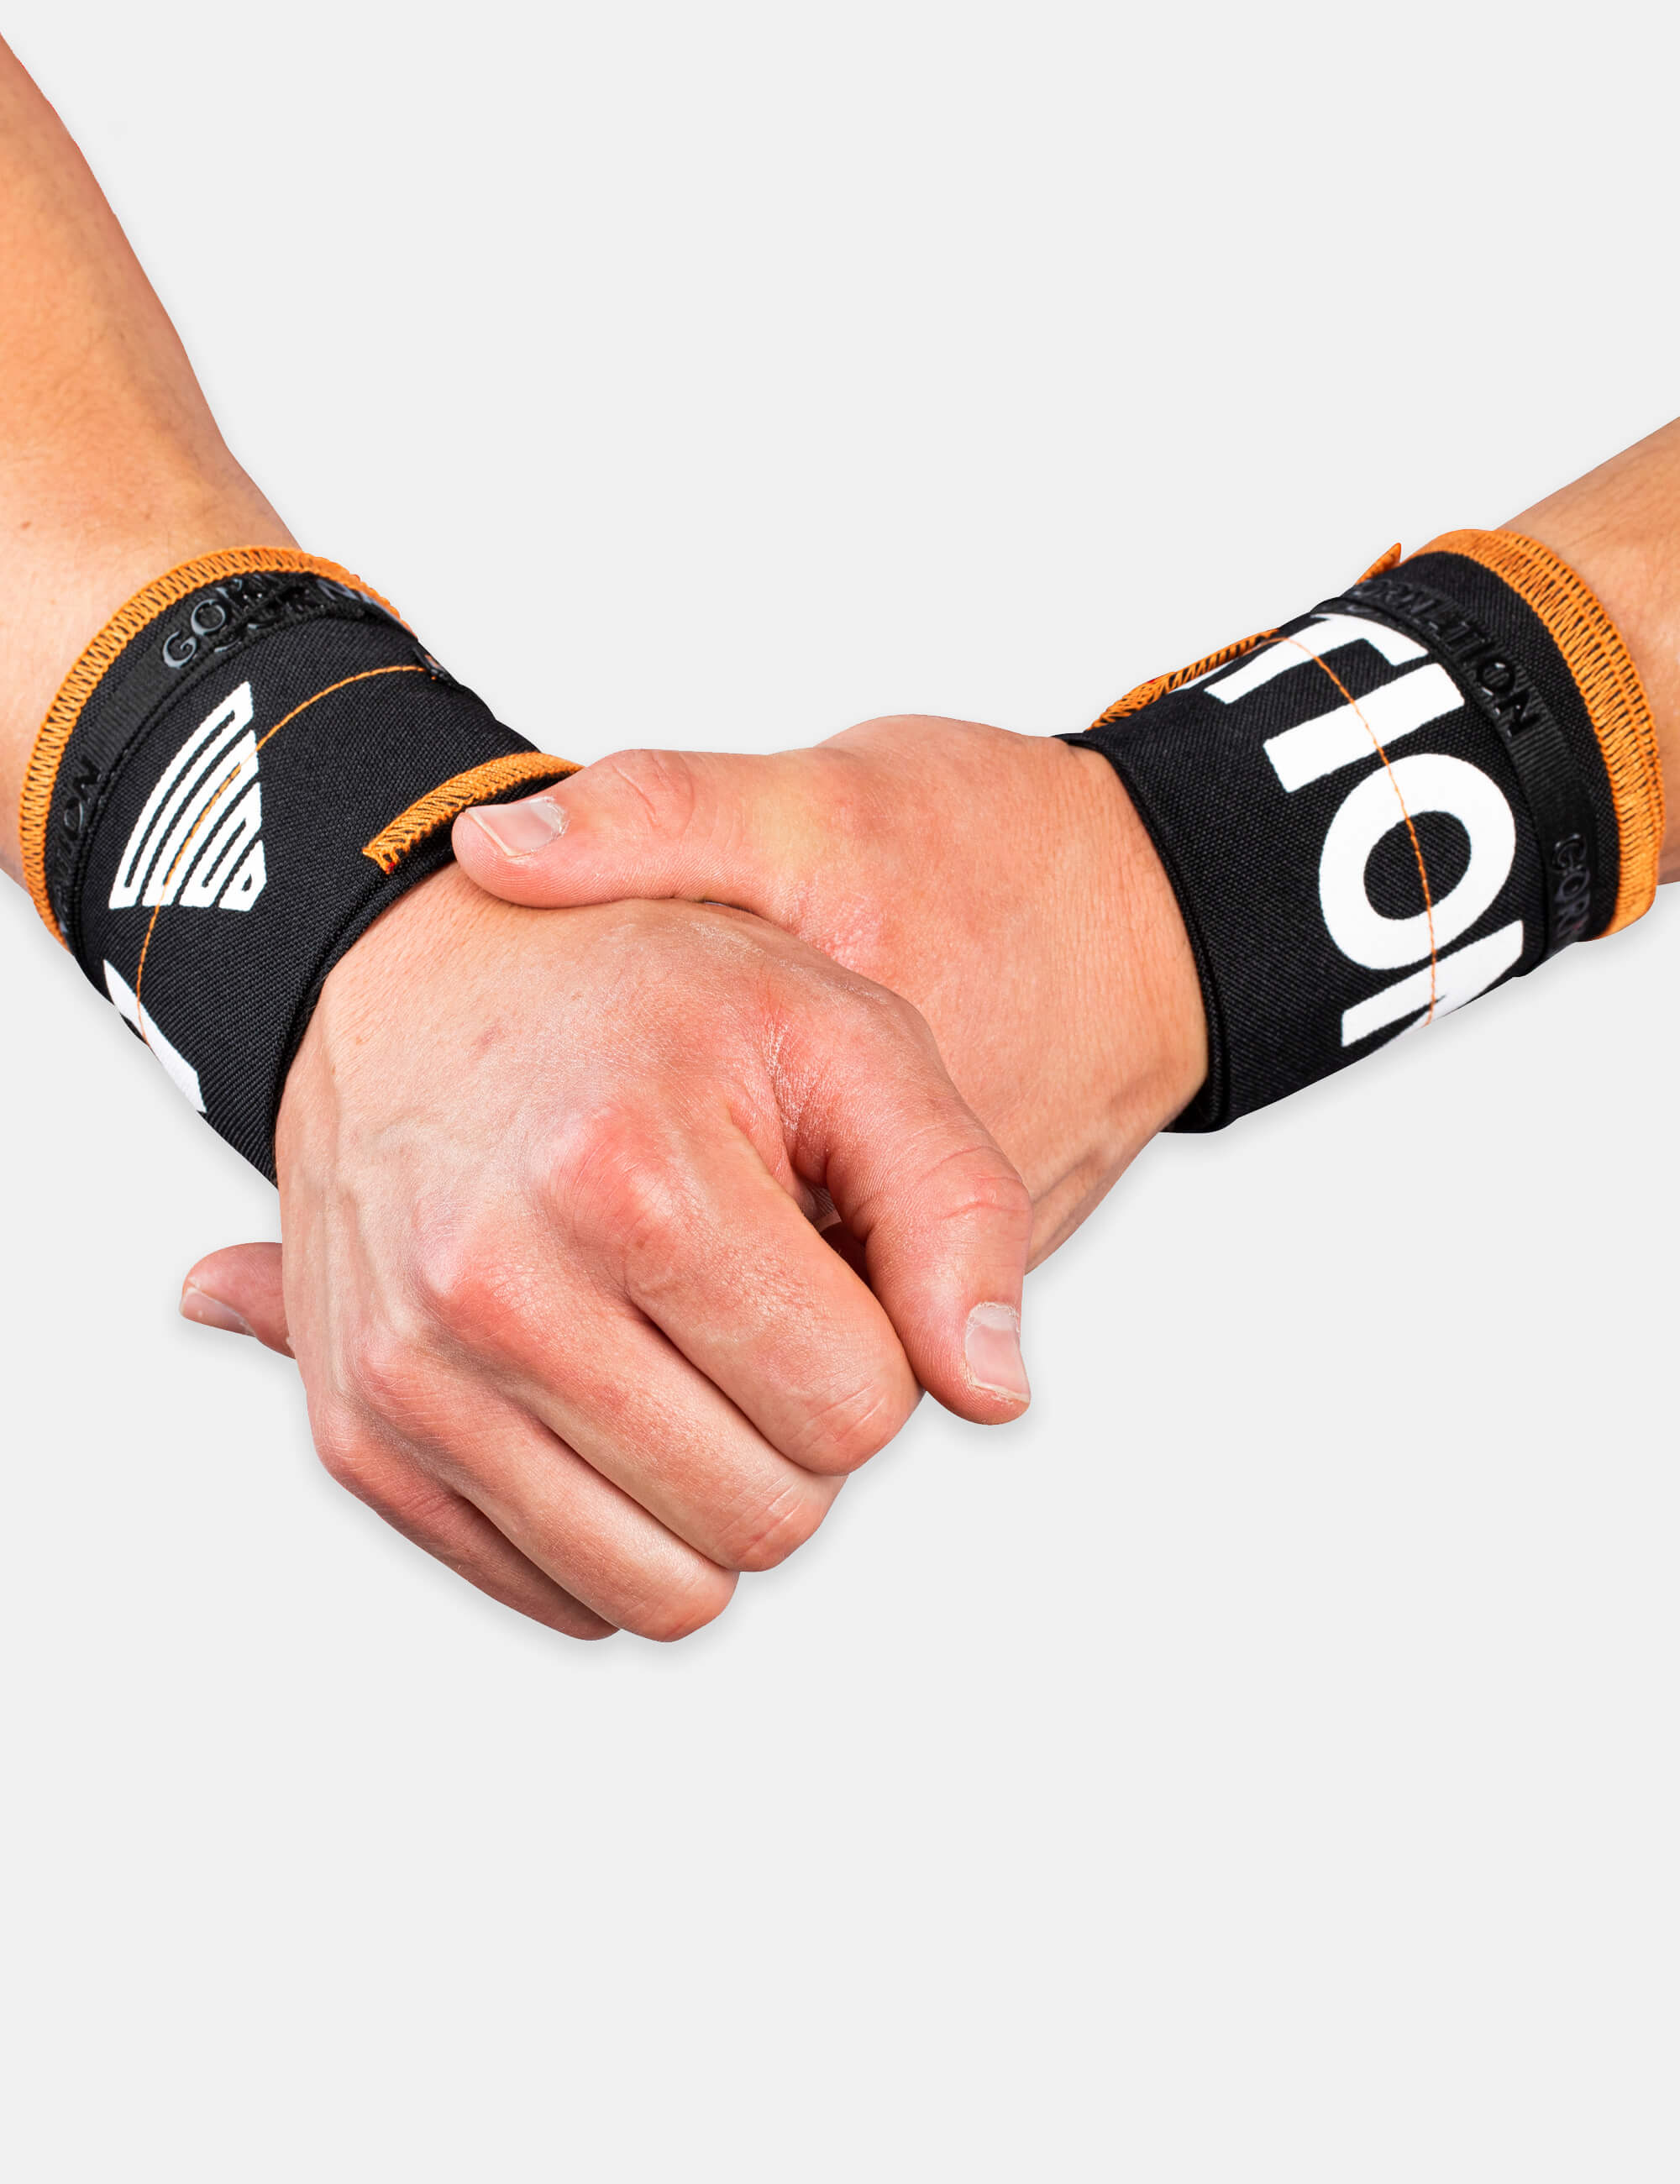 Black-Orange Gornation Wrist wraps with tight fit, adjustable wristband for wrist support and injury prevention